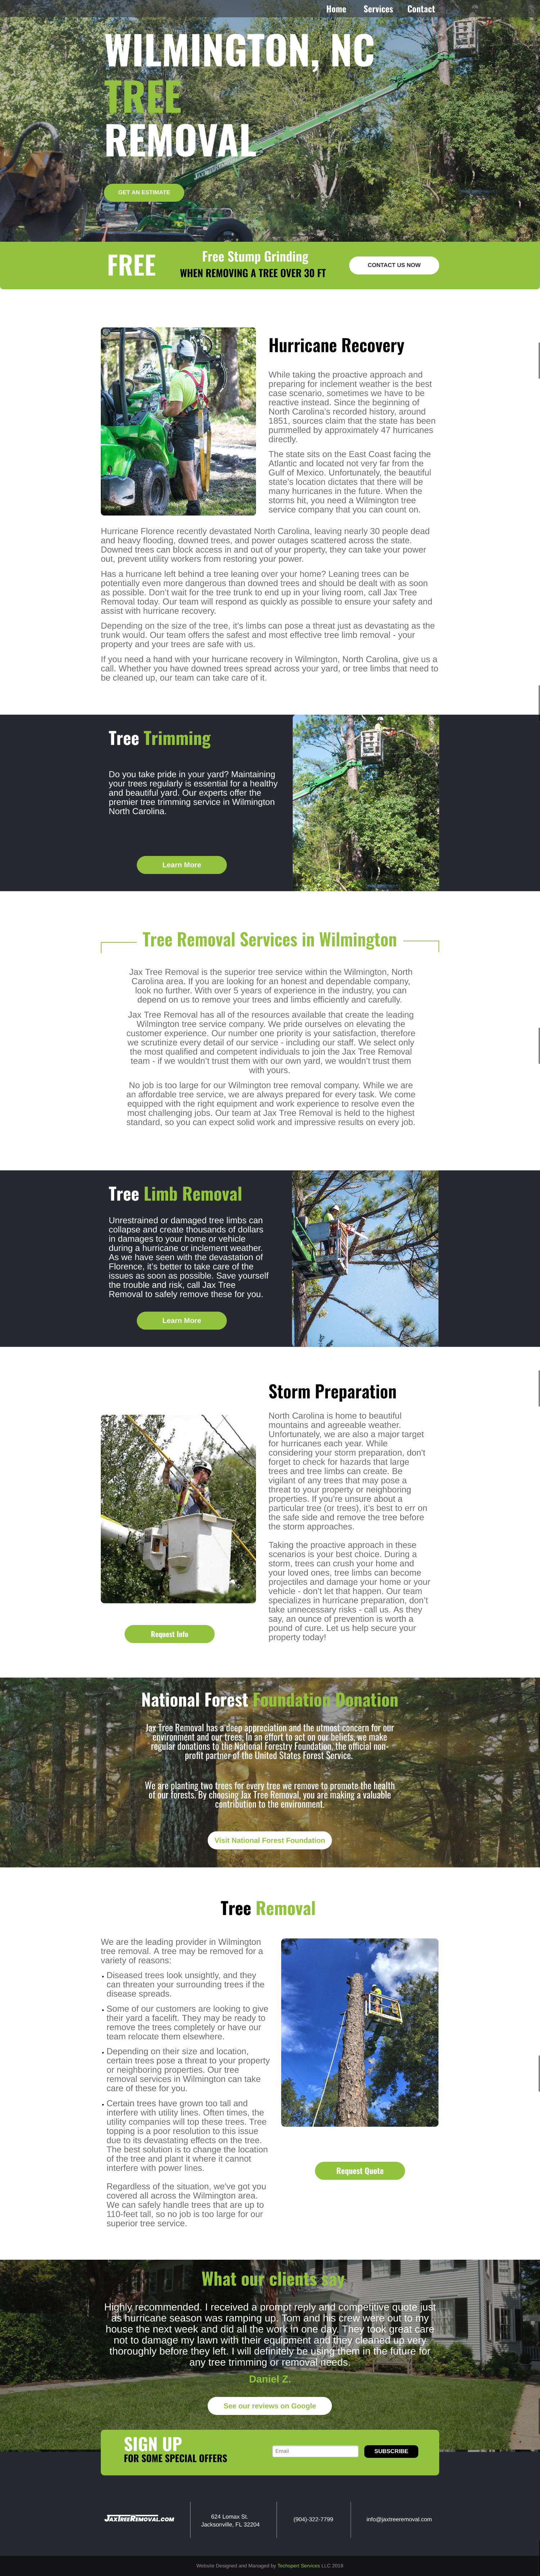 Wilmington Tree Removal _ JaxTreeRemoval